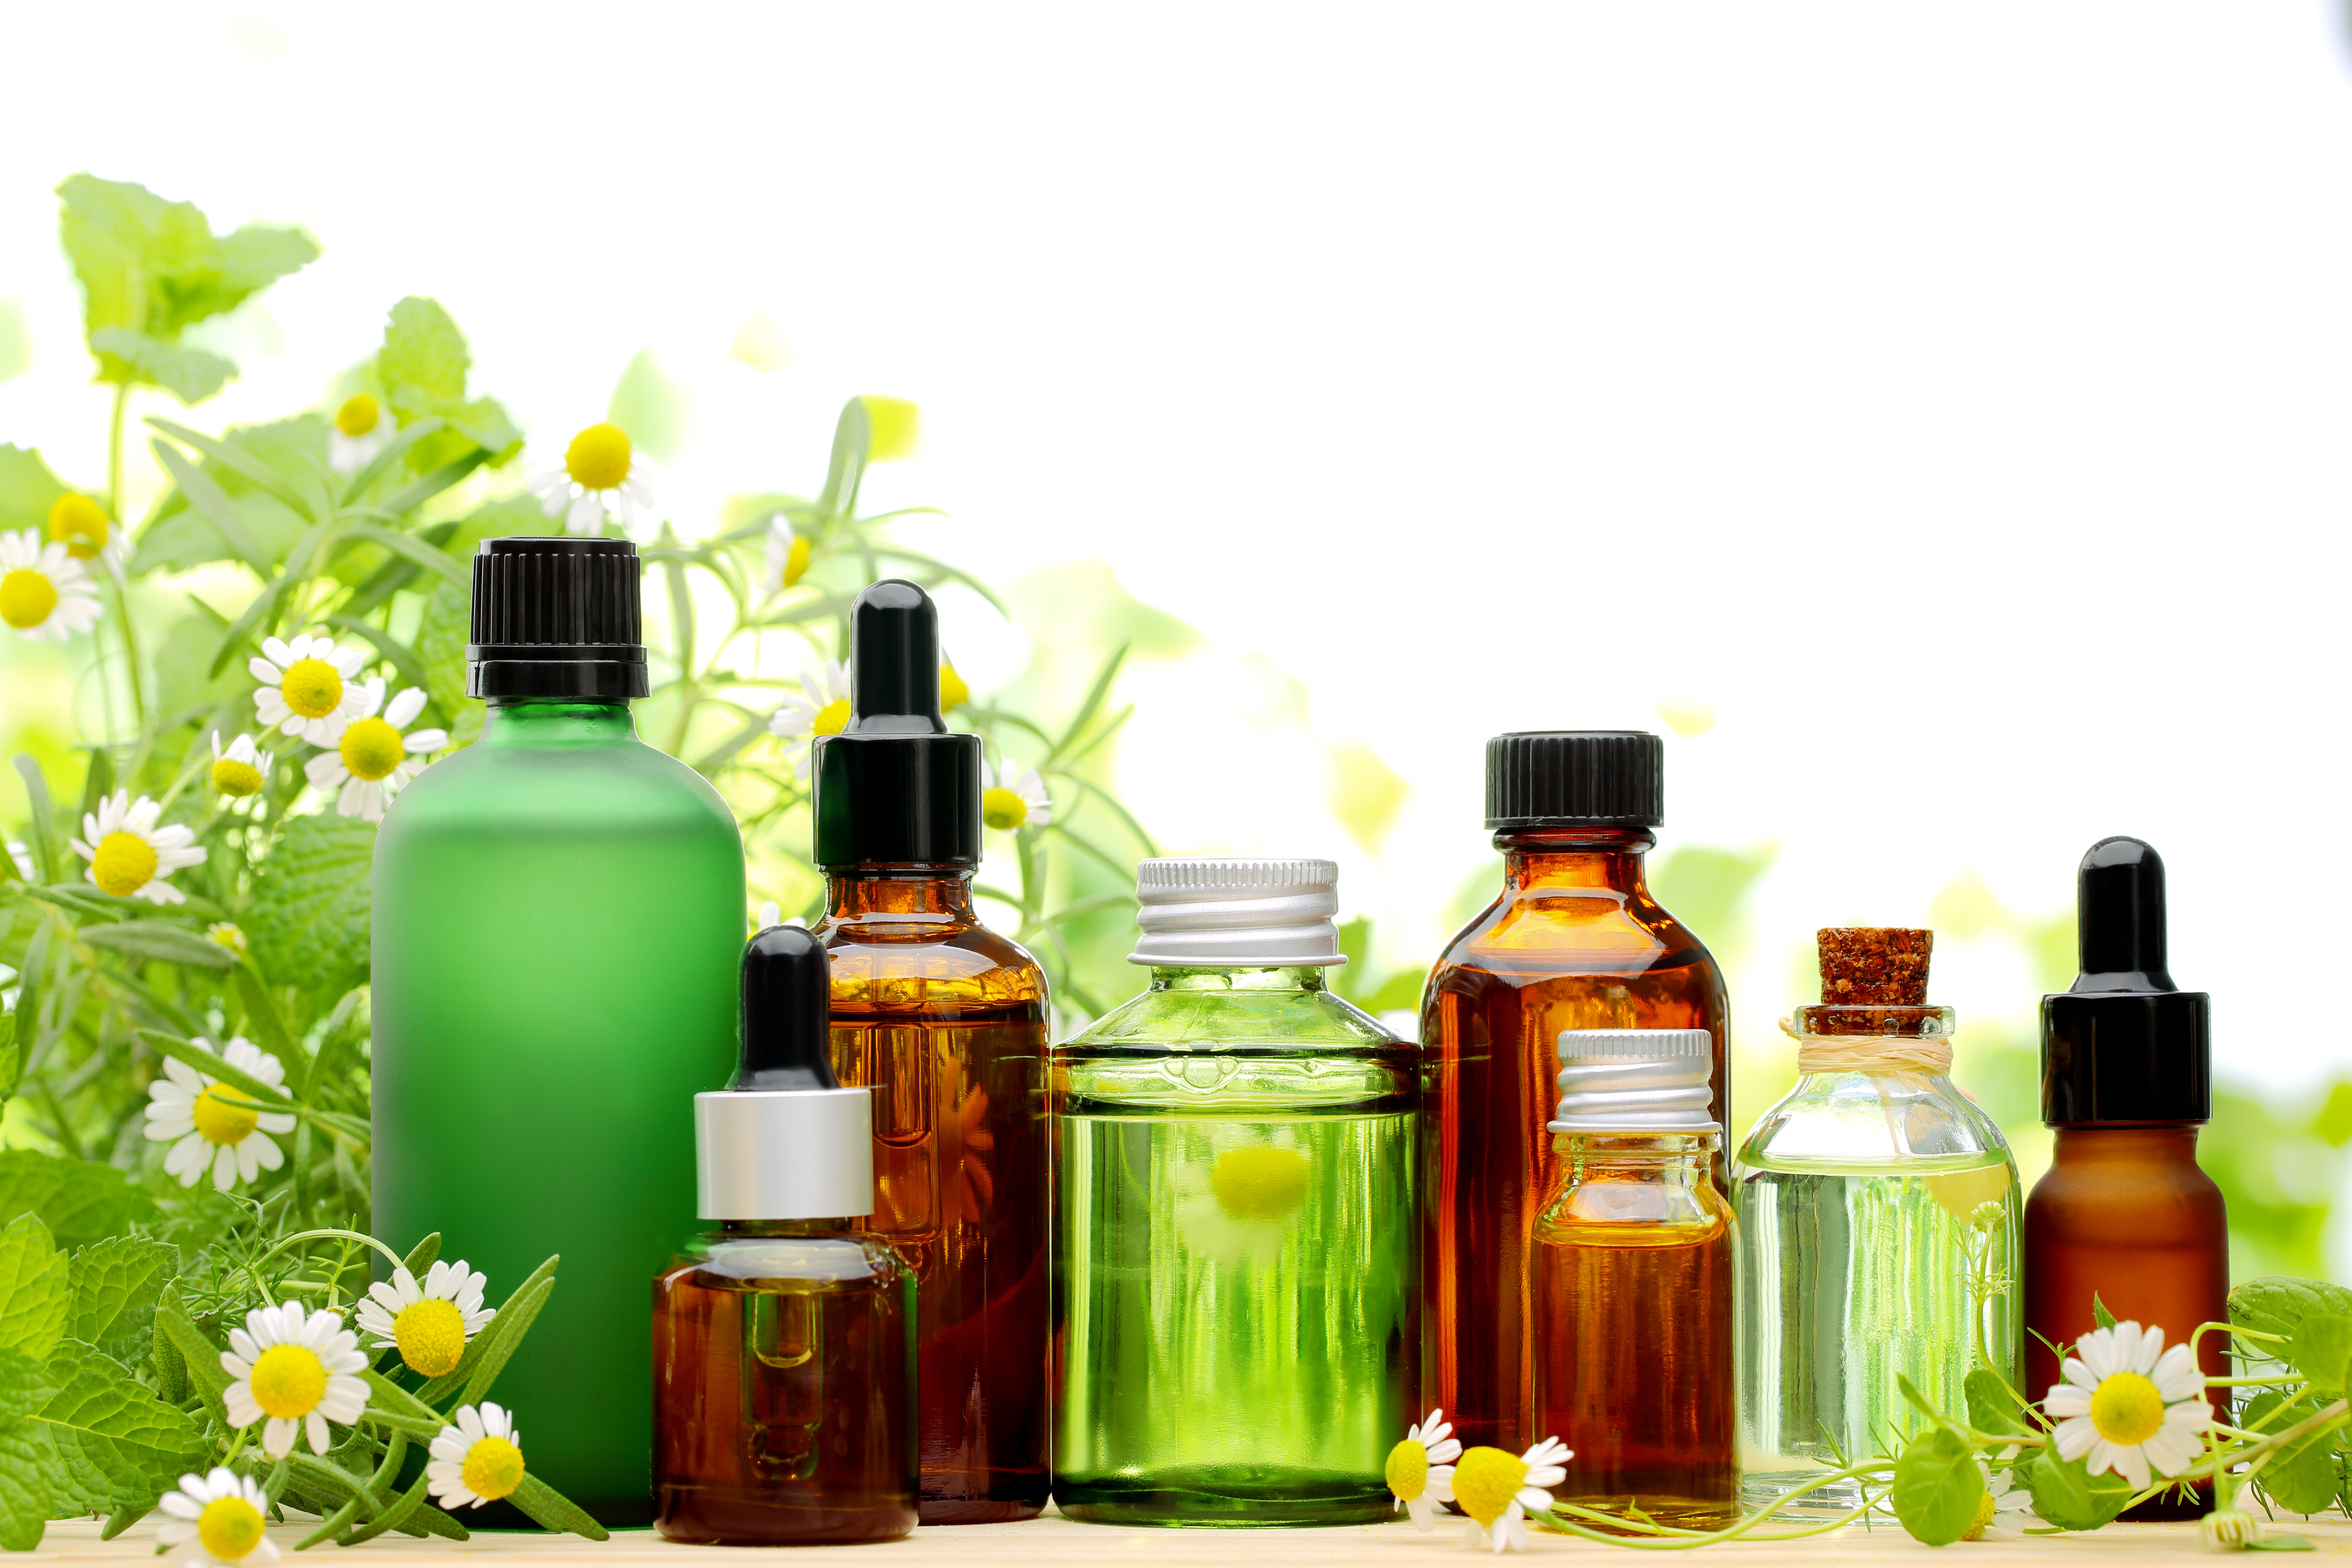 my doterra review 2 of essential oils reviews. Black Bedroom Furniture Sets. Home Design Ideas